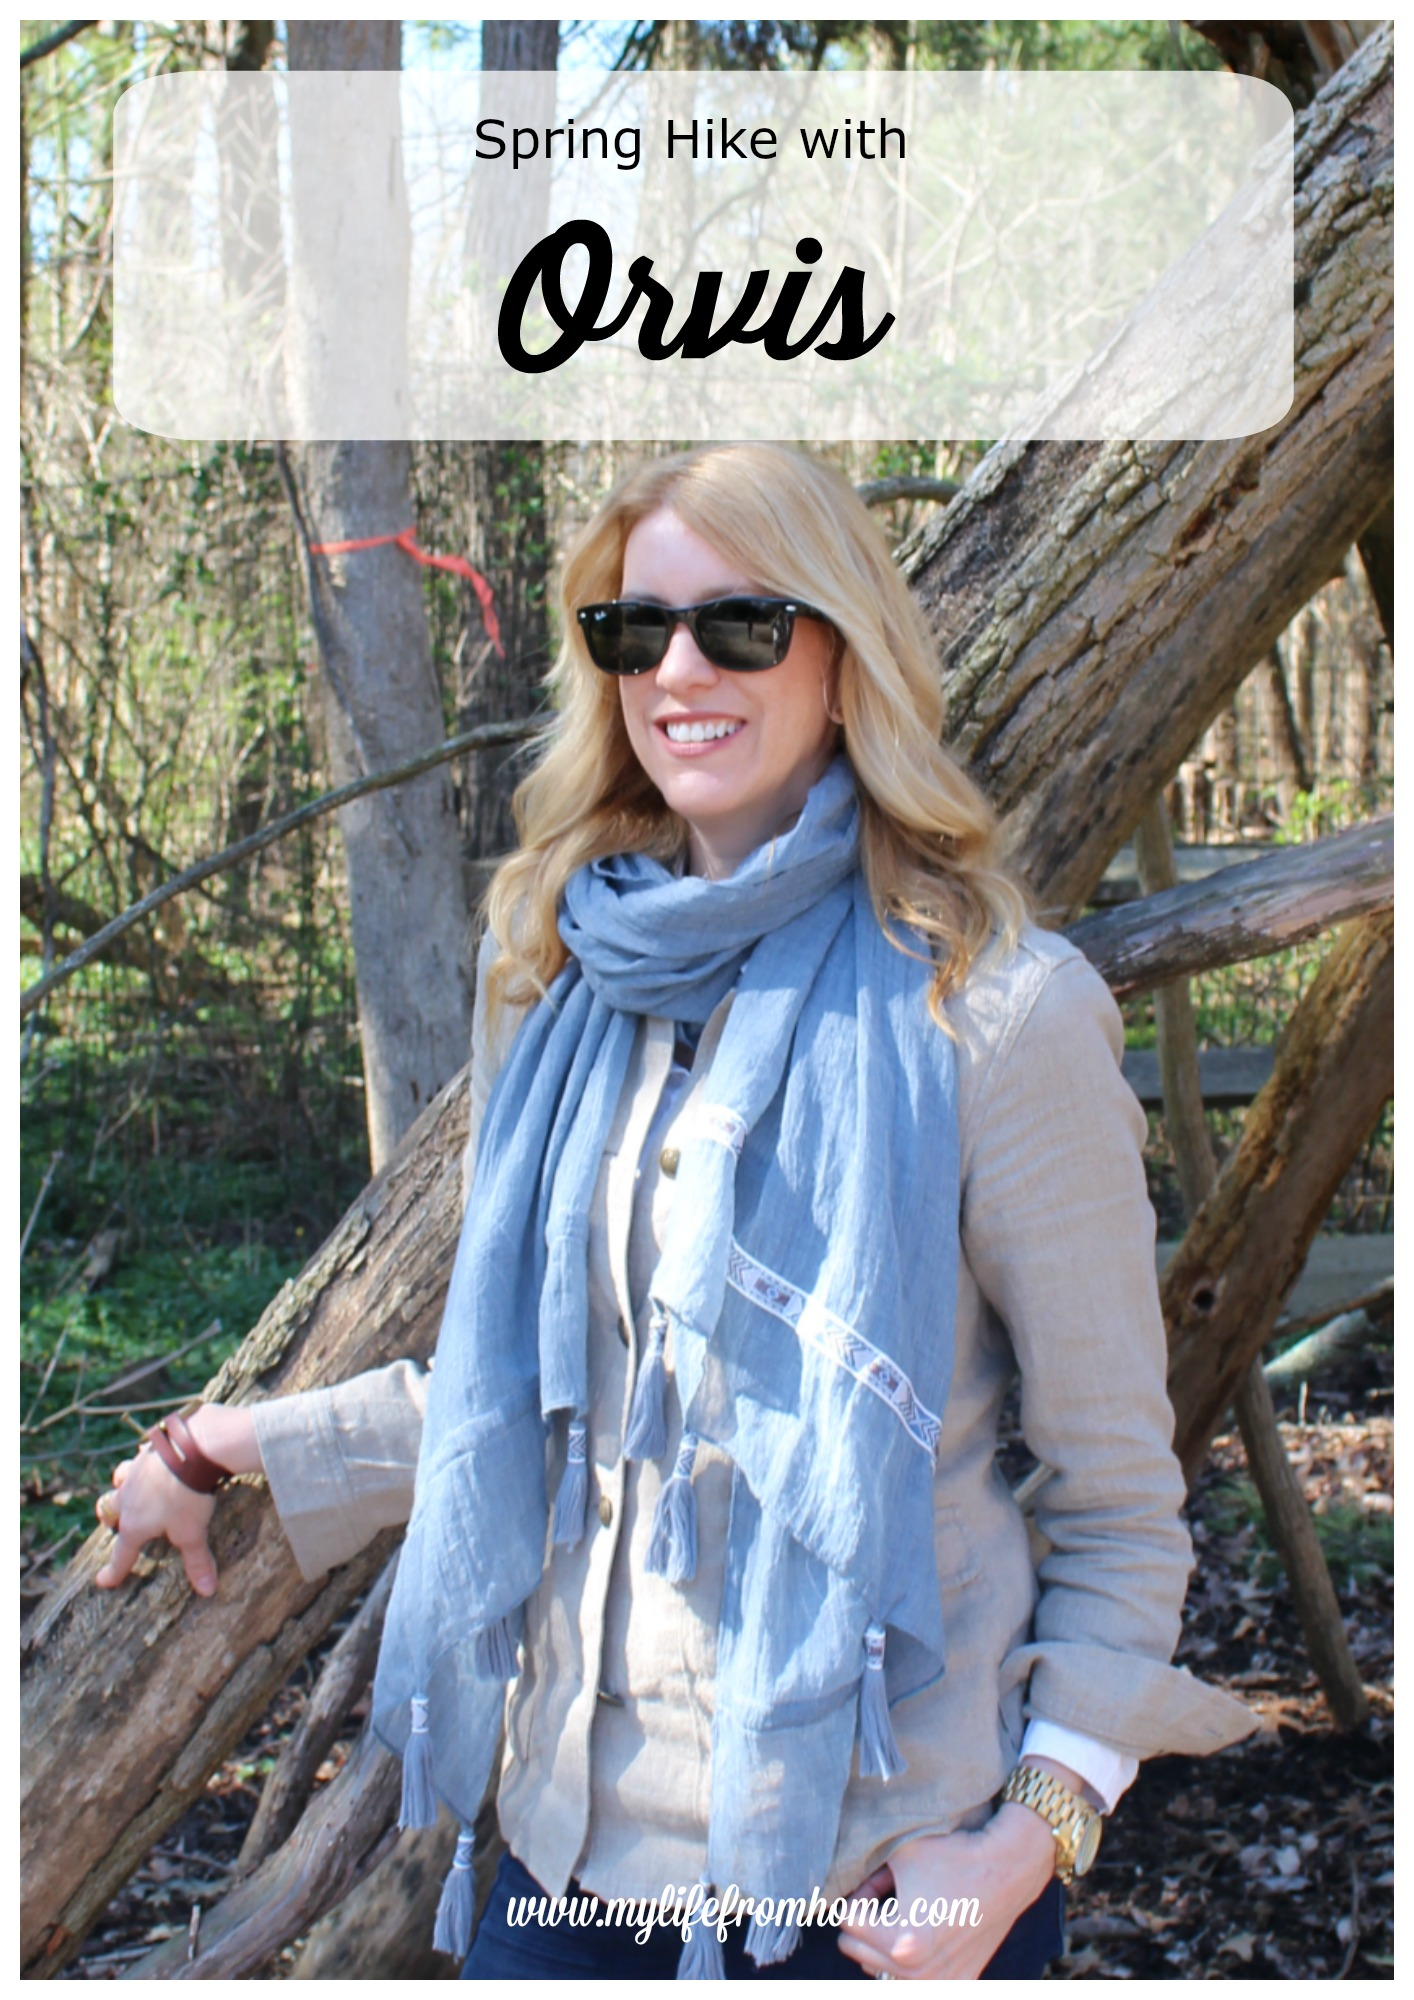 Spring Hike with Orvis's New Women's Spring Fashion Line by www.mylifefromhome.com